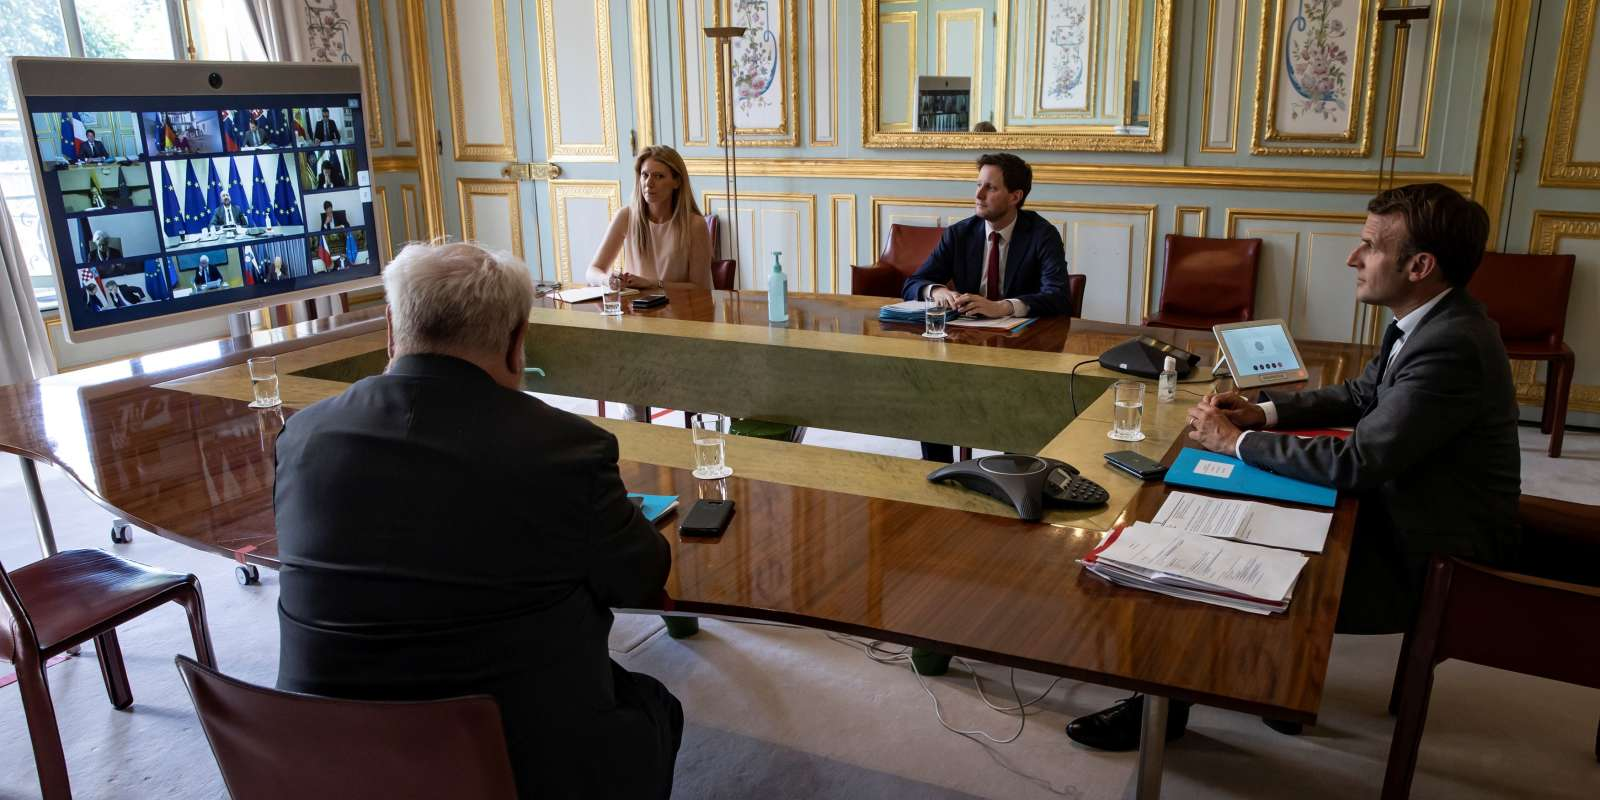 French President Emmanuel Macron attends a video conference with members of the European Council, amid the outbreak of COVID-19 disease, at the Elysee Palace in Paris, France April 23, 2020. Ian Langsdon/Pool via REUTERS